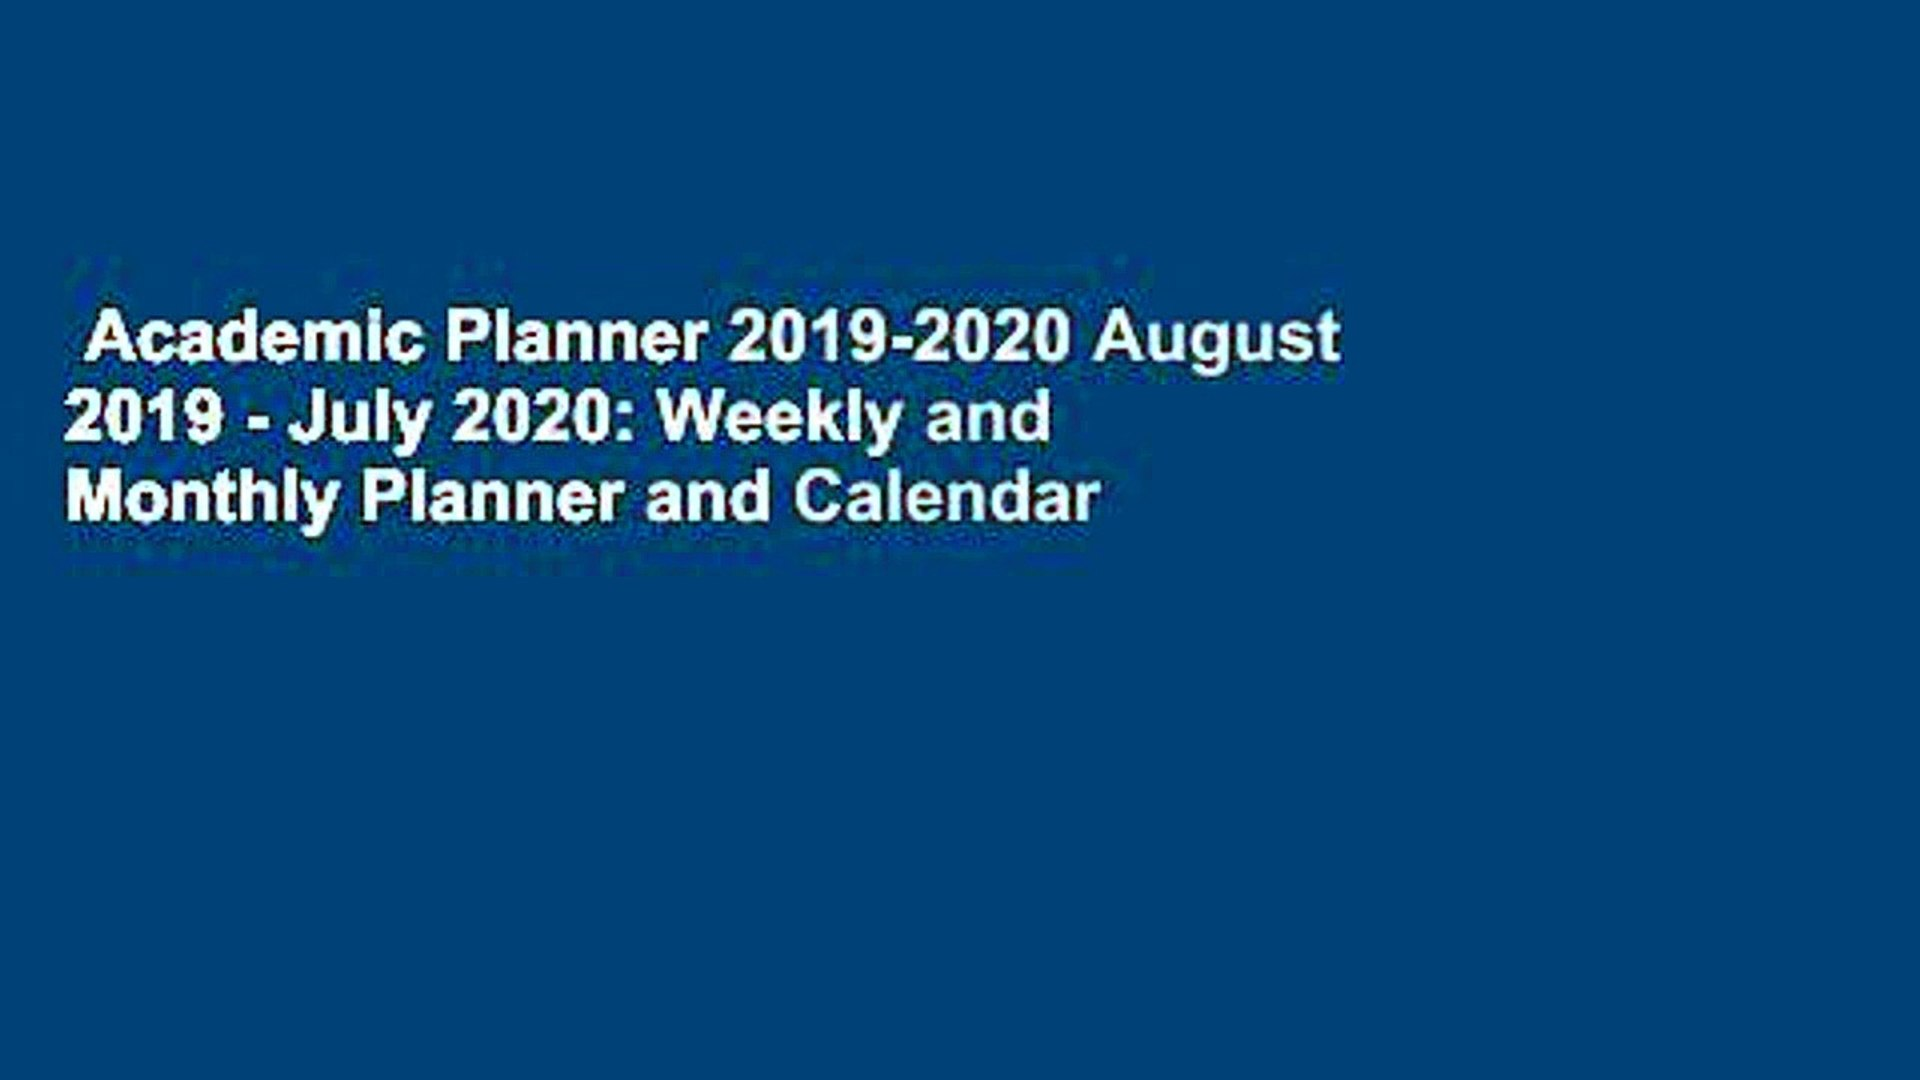 Academic Planner 2019-2020 August 2019 - July 2020: Weekly and Monthly Planner and Calendar